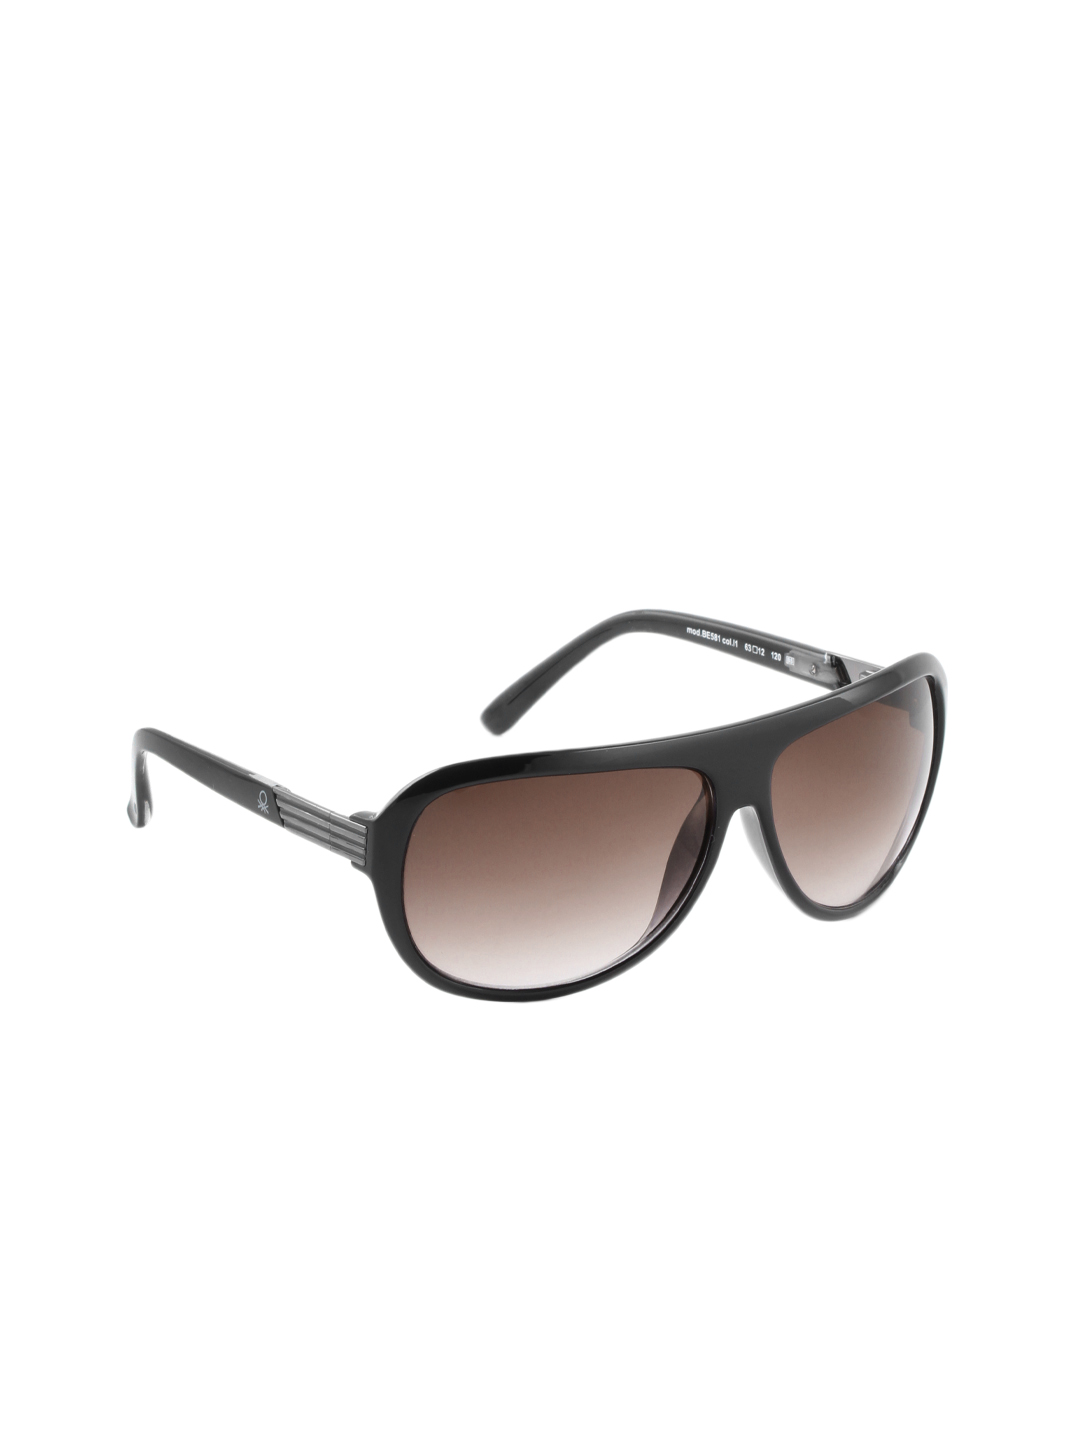 United Colors of Benetton Men Black Sunglasses